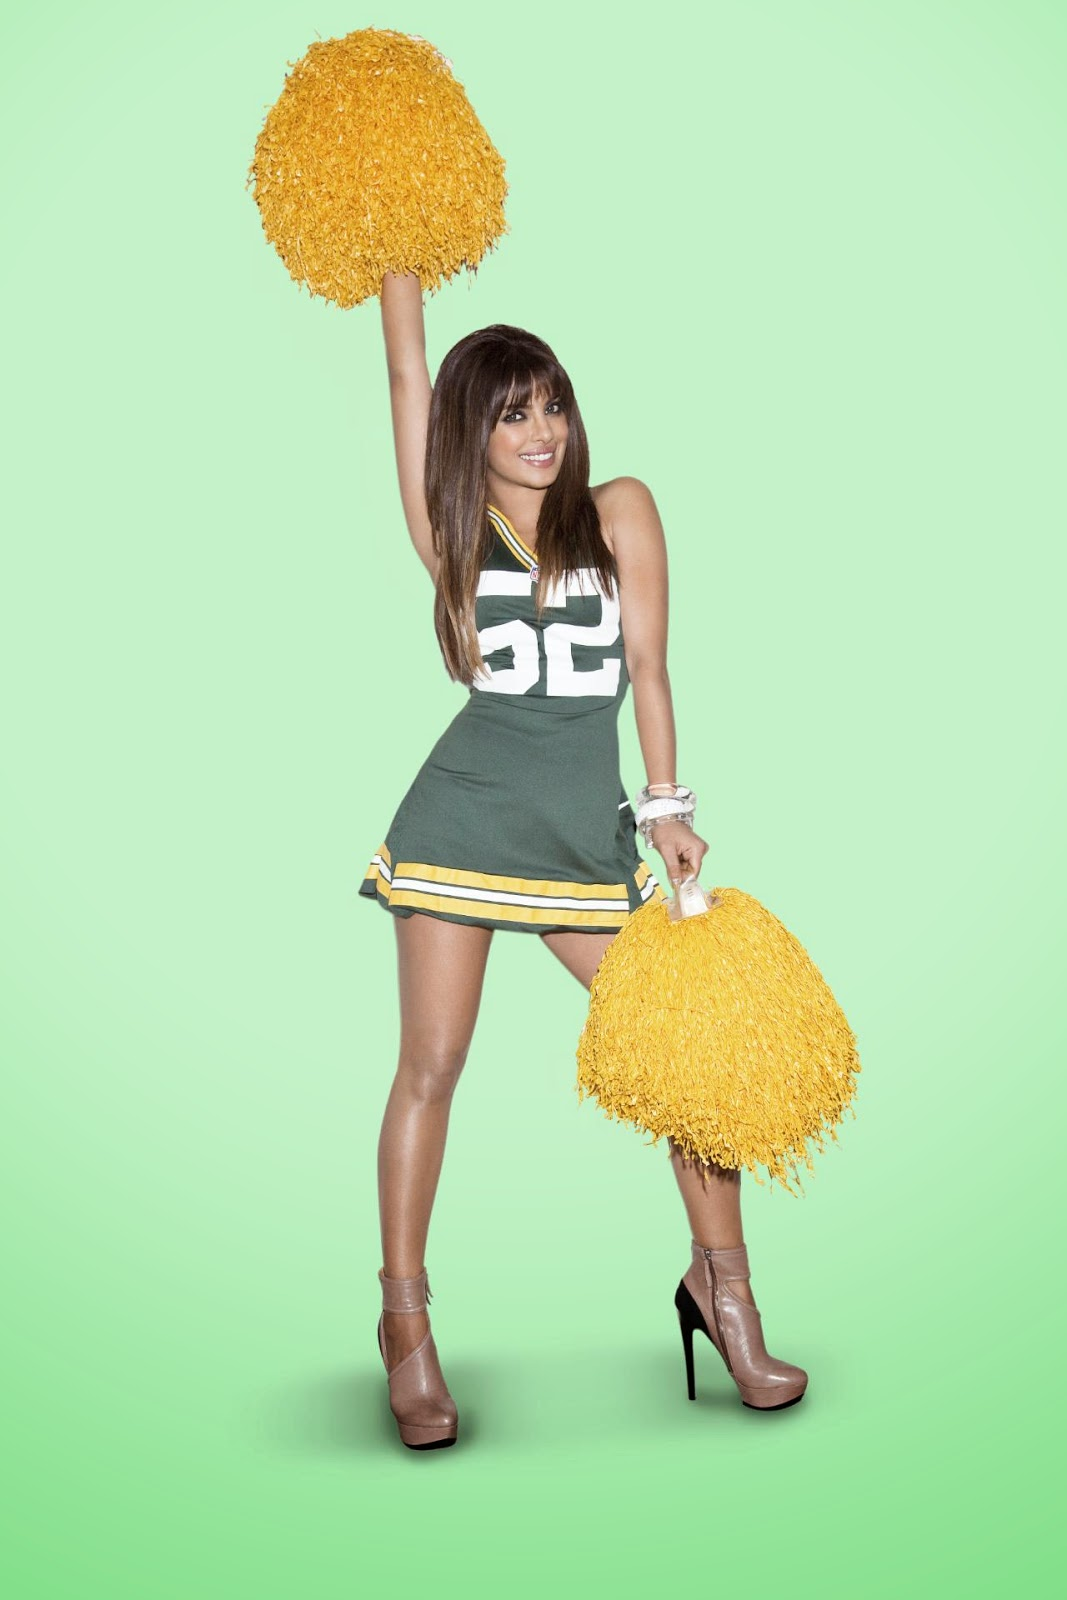 Priyanka Chopra as NFL Cheerleader